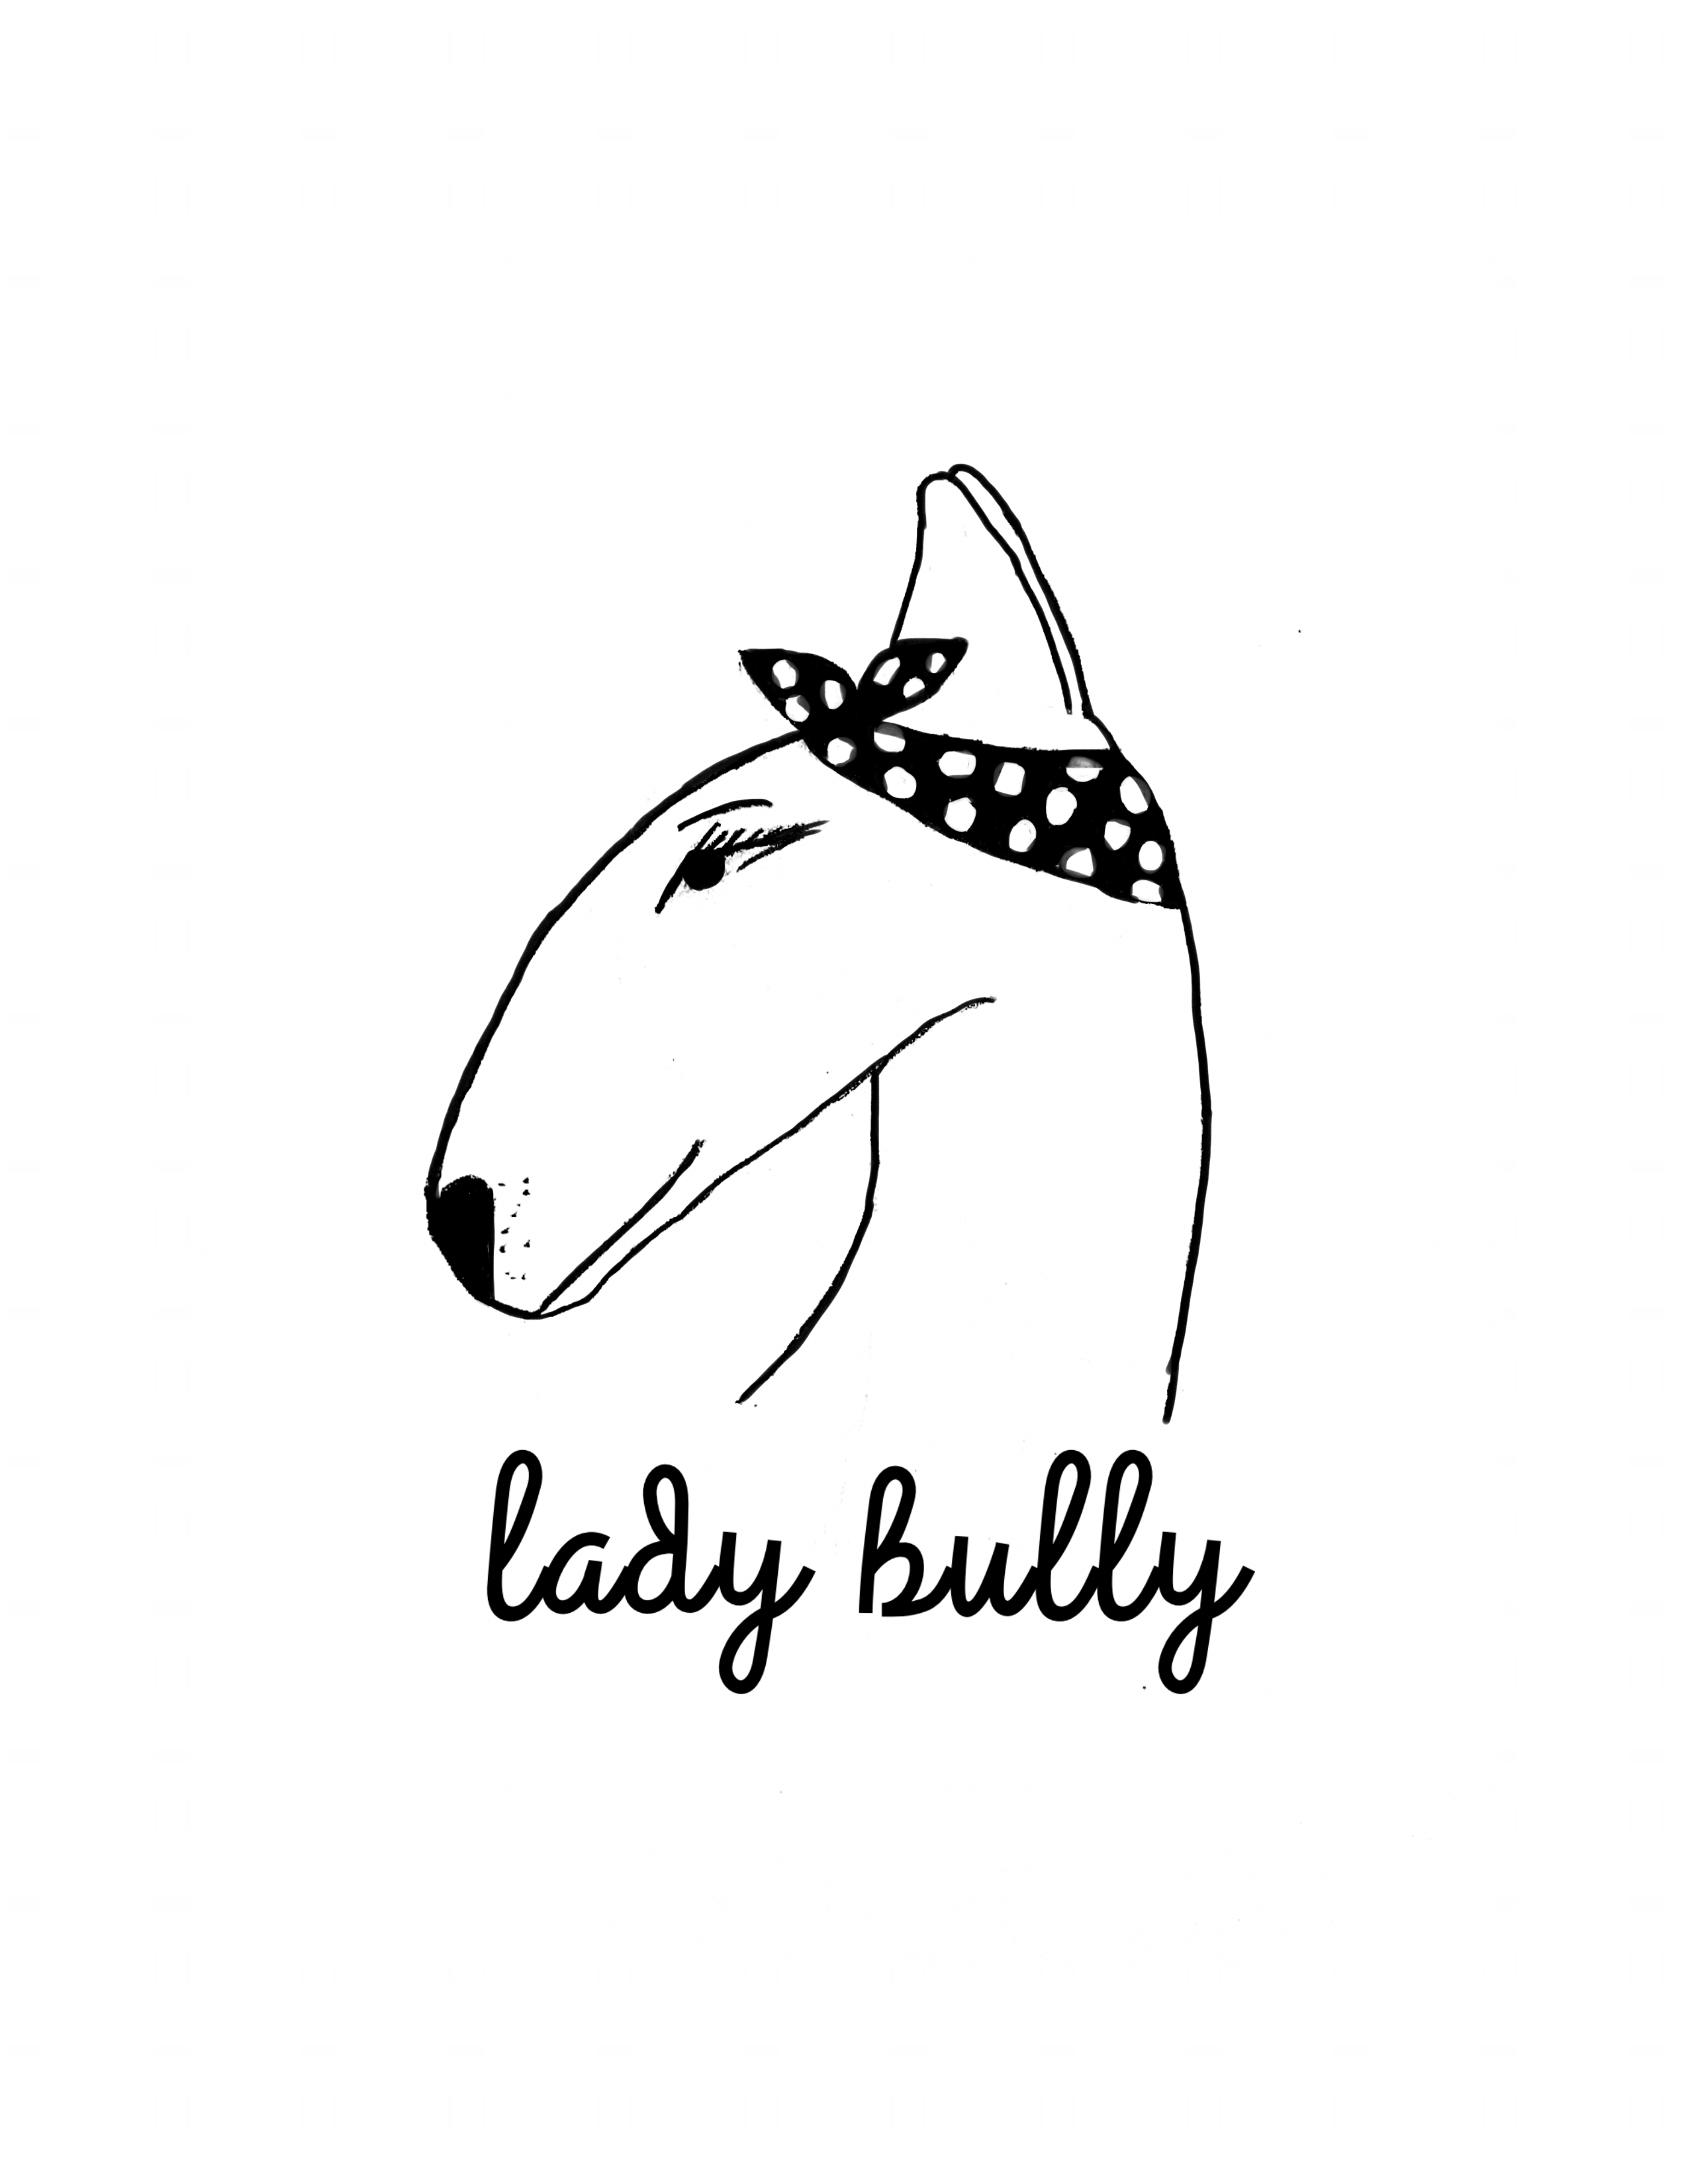 The Lady Bully